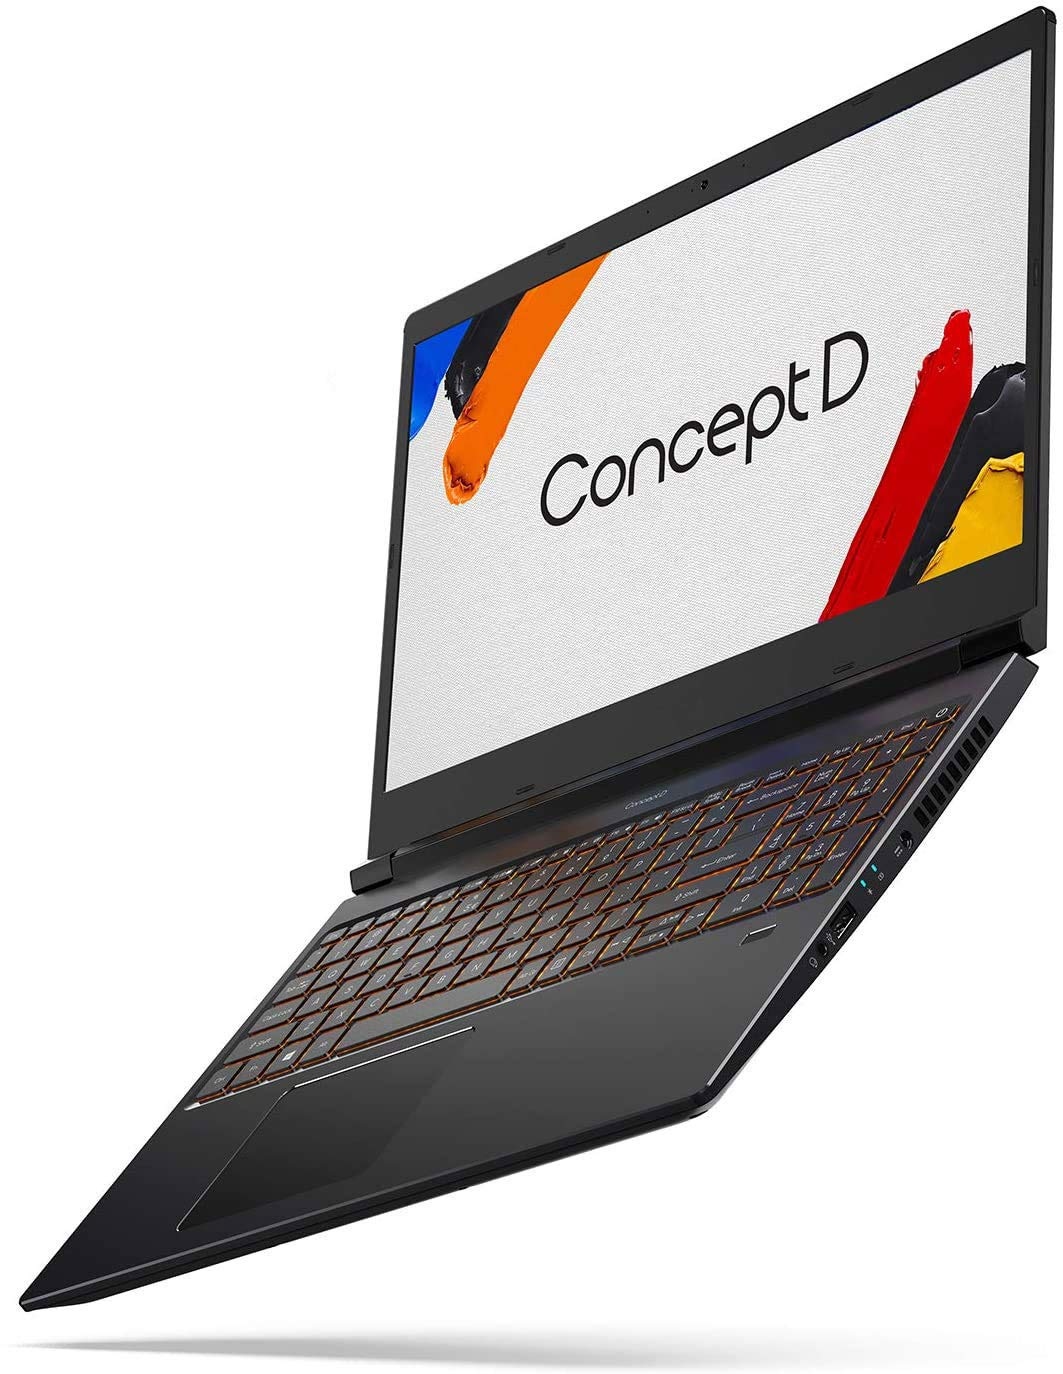 "ConceptD 3 CN315-71-791U Creator Laptop, Intel Core i7-9750H, NVIDIA GeForce GTX 1650, NVIDIA Studio, 15.6"" FHD IPS, 100% DCI-P3 Color Gamut, Pantone Validated, Delta E<2, 16GB DDR4,"